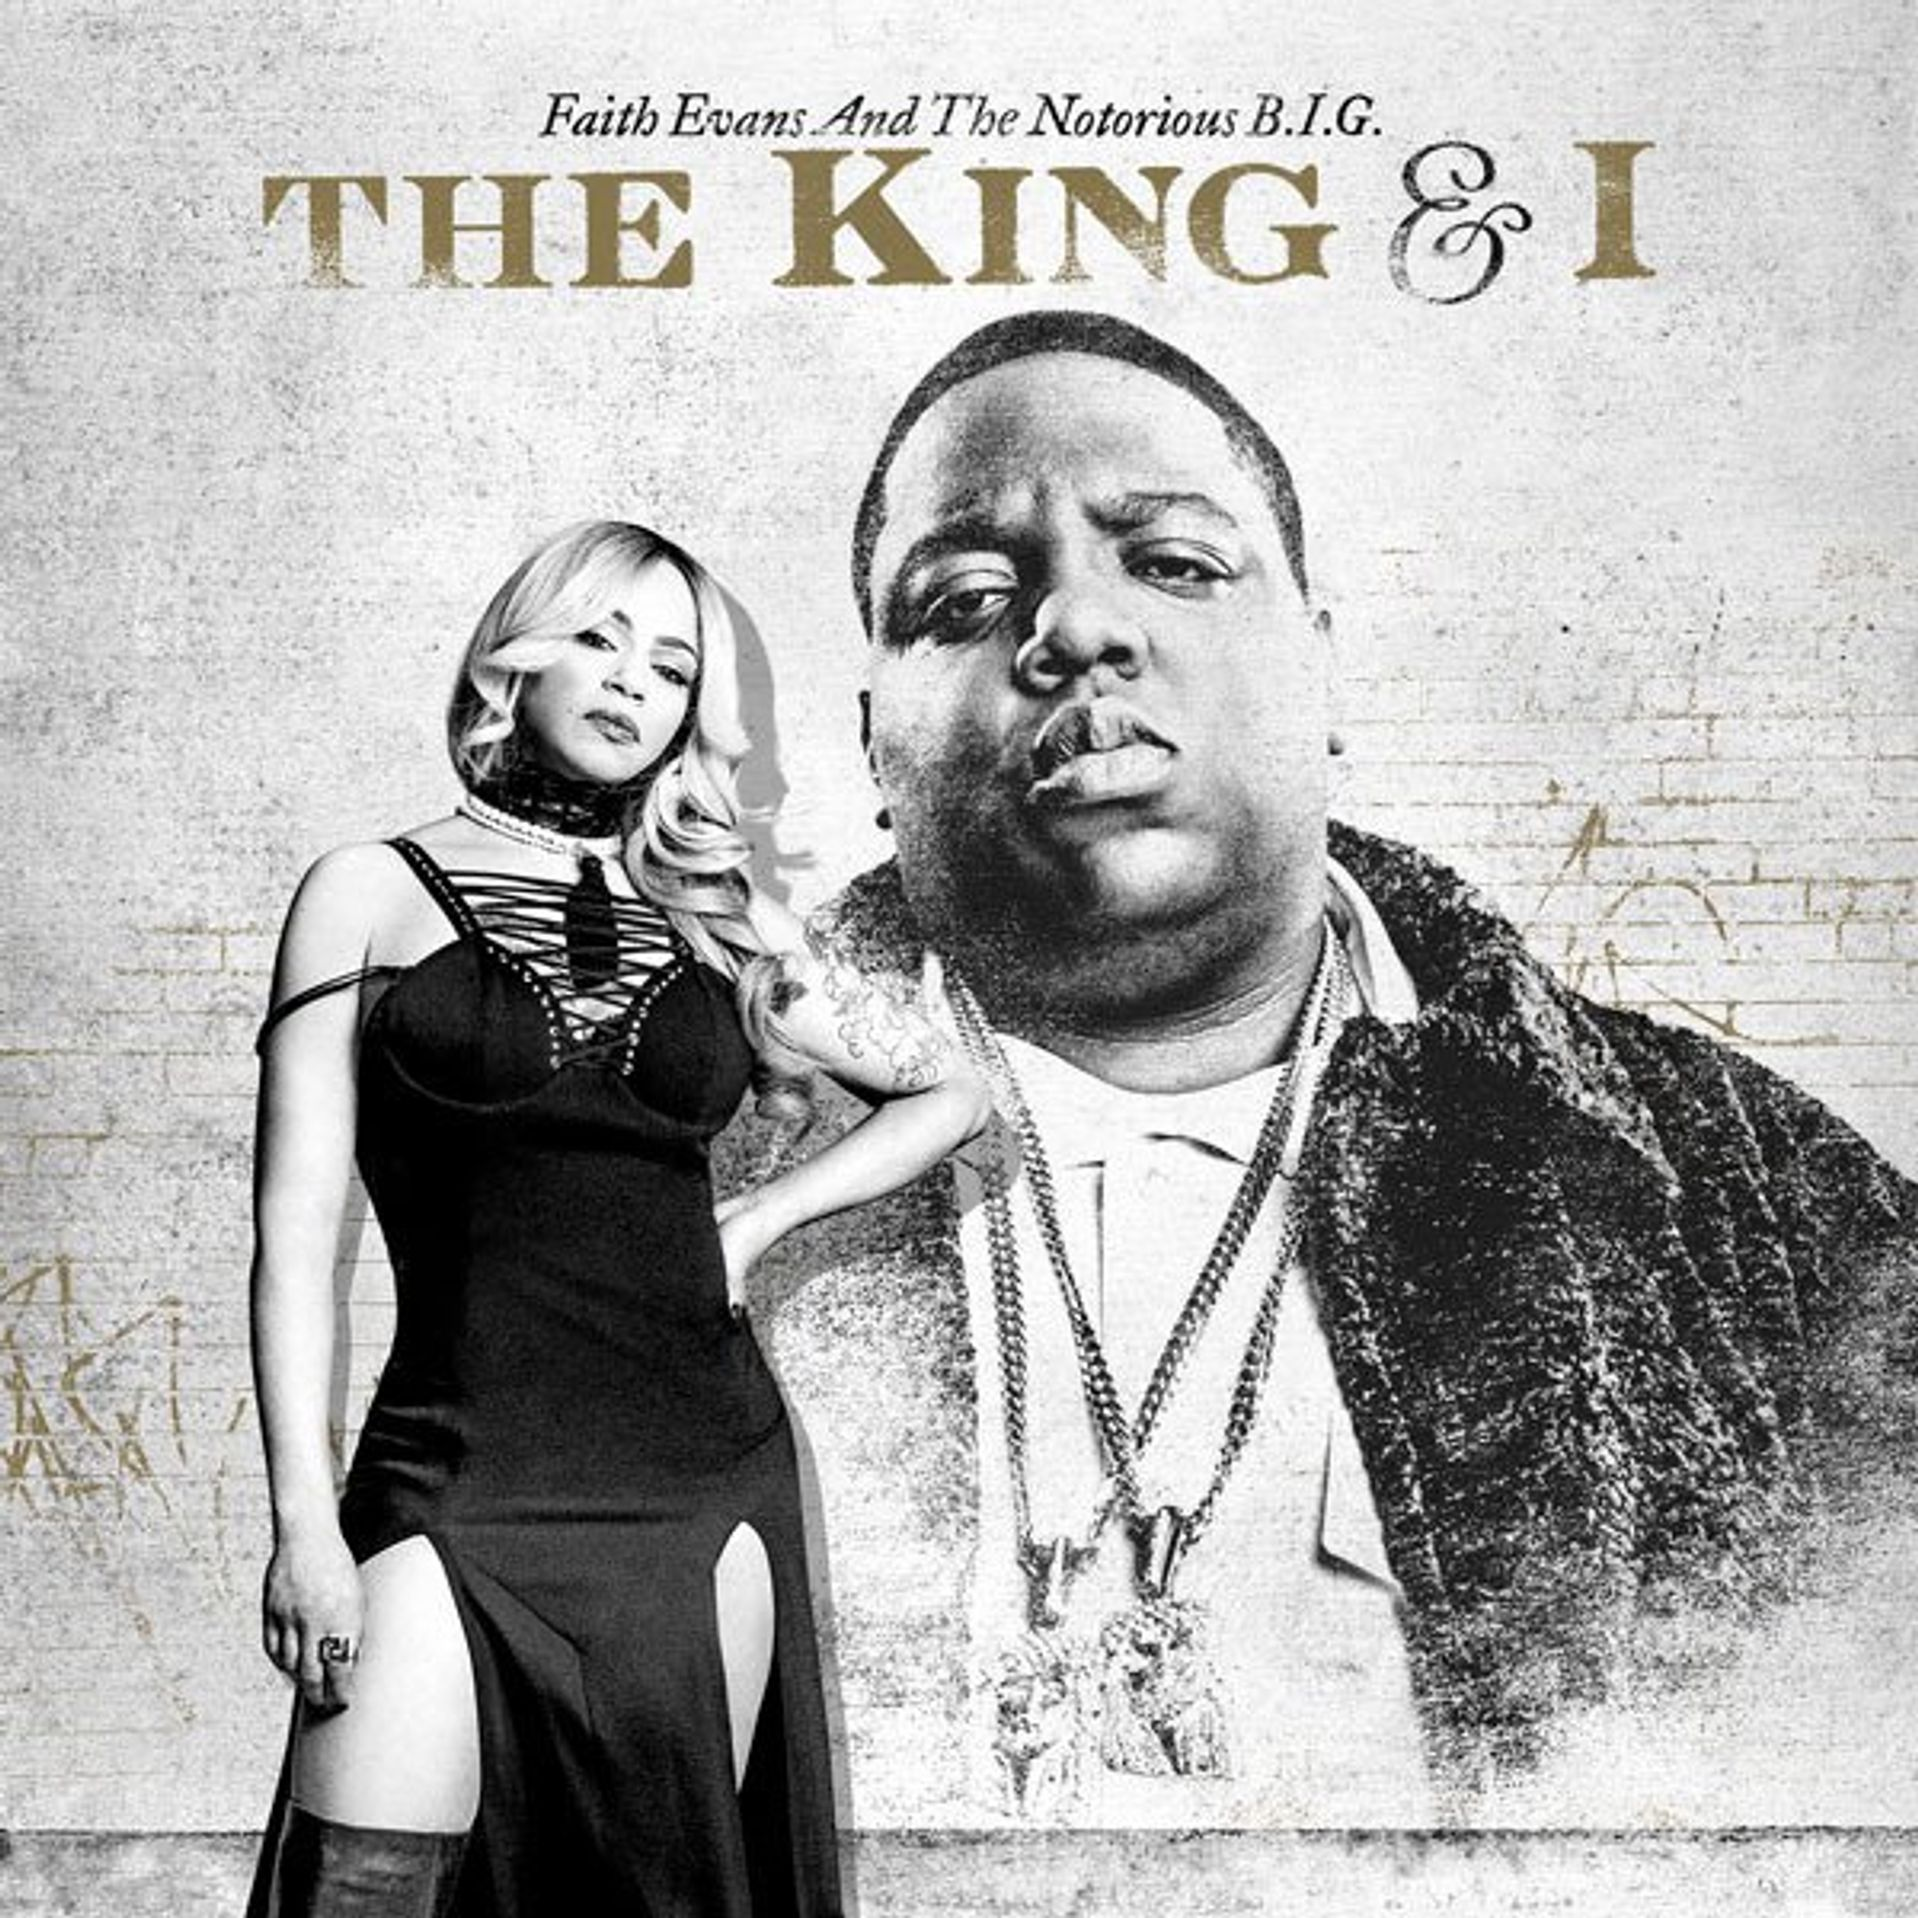 Album Title: The King & I by: The Notorious BIG